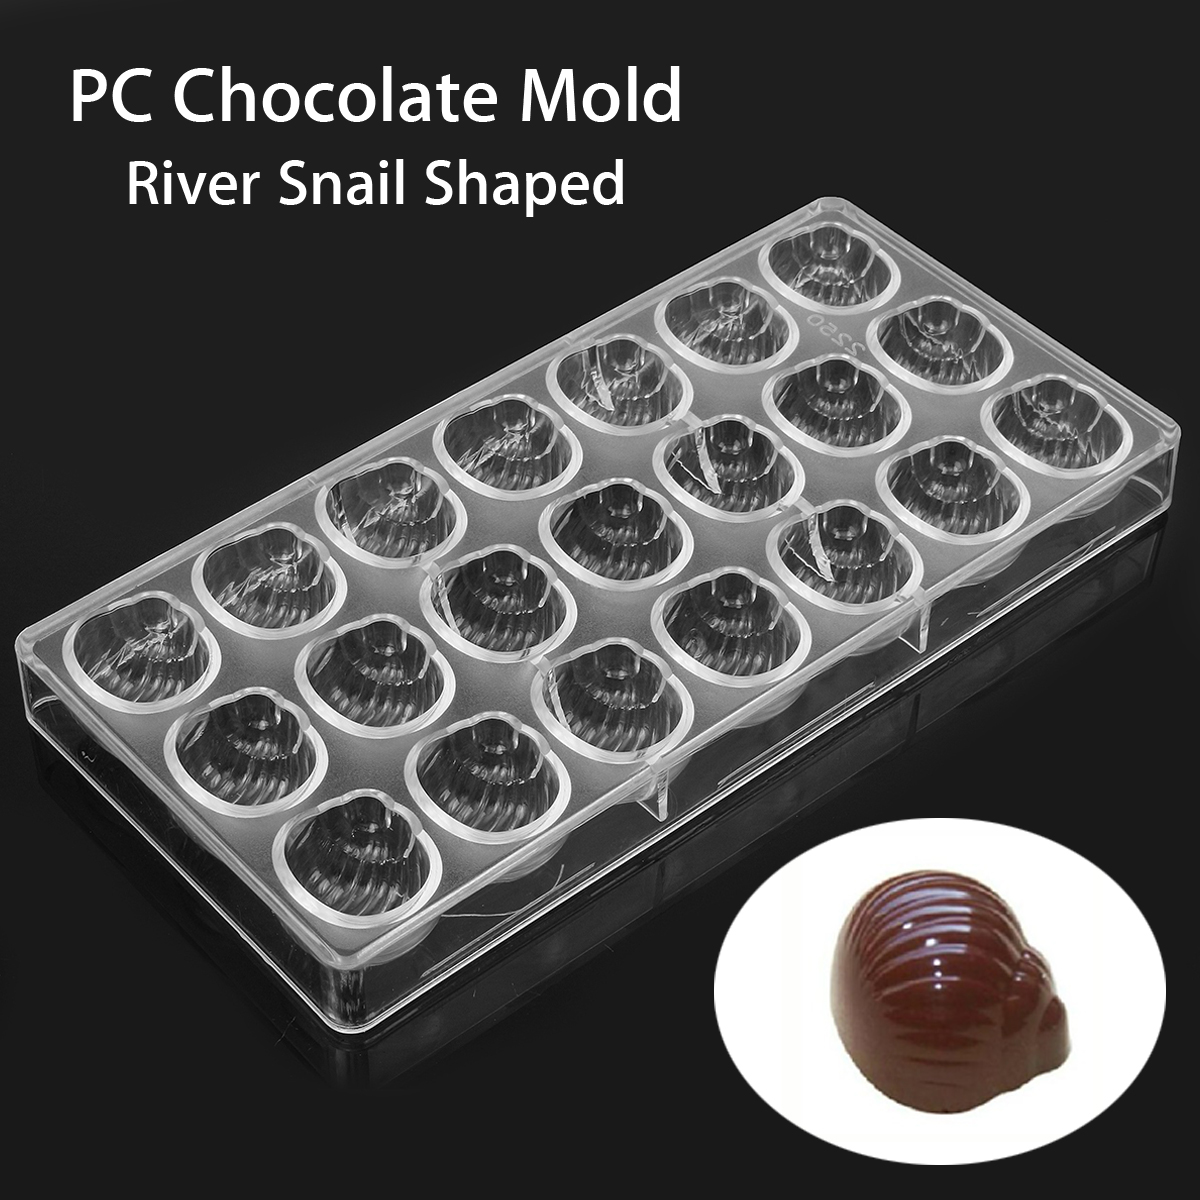 Clear River Snail Shaped PC Chocolate Mold Candy Pudding Mould Tray DIY Baking Tool